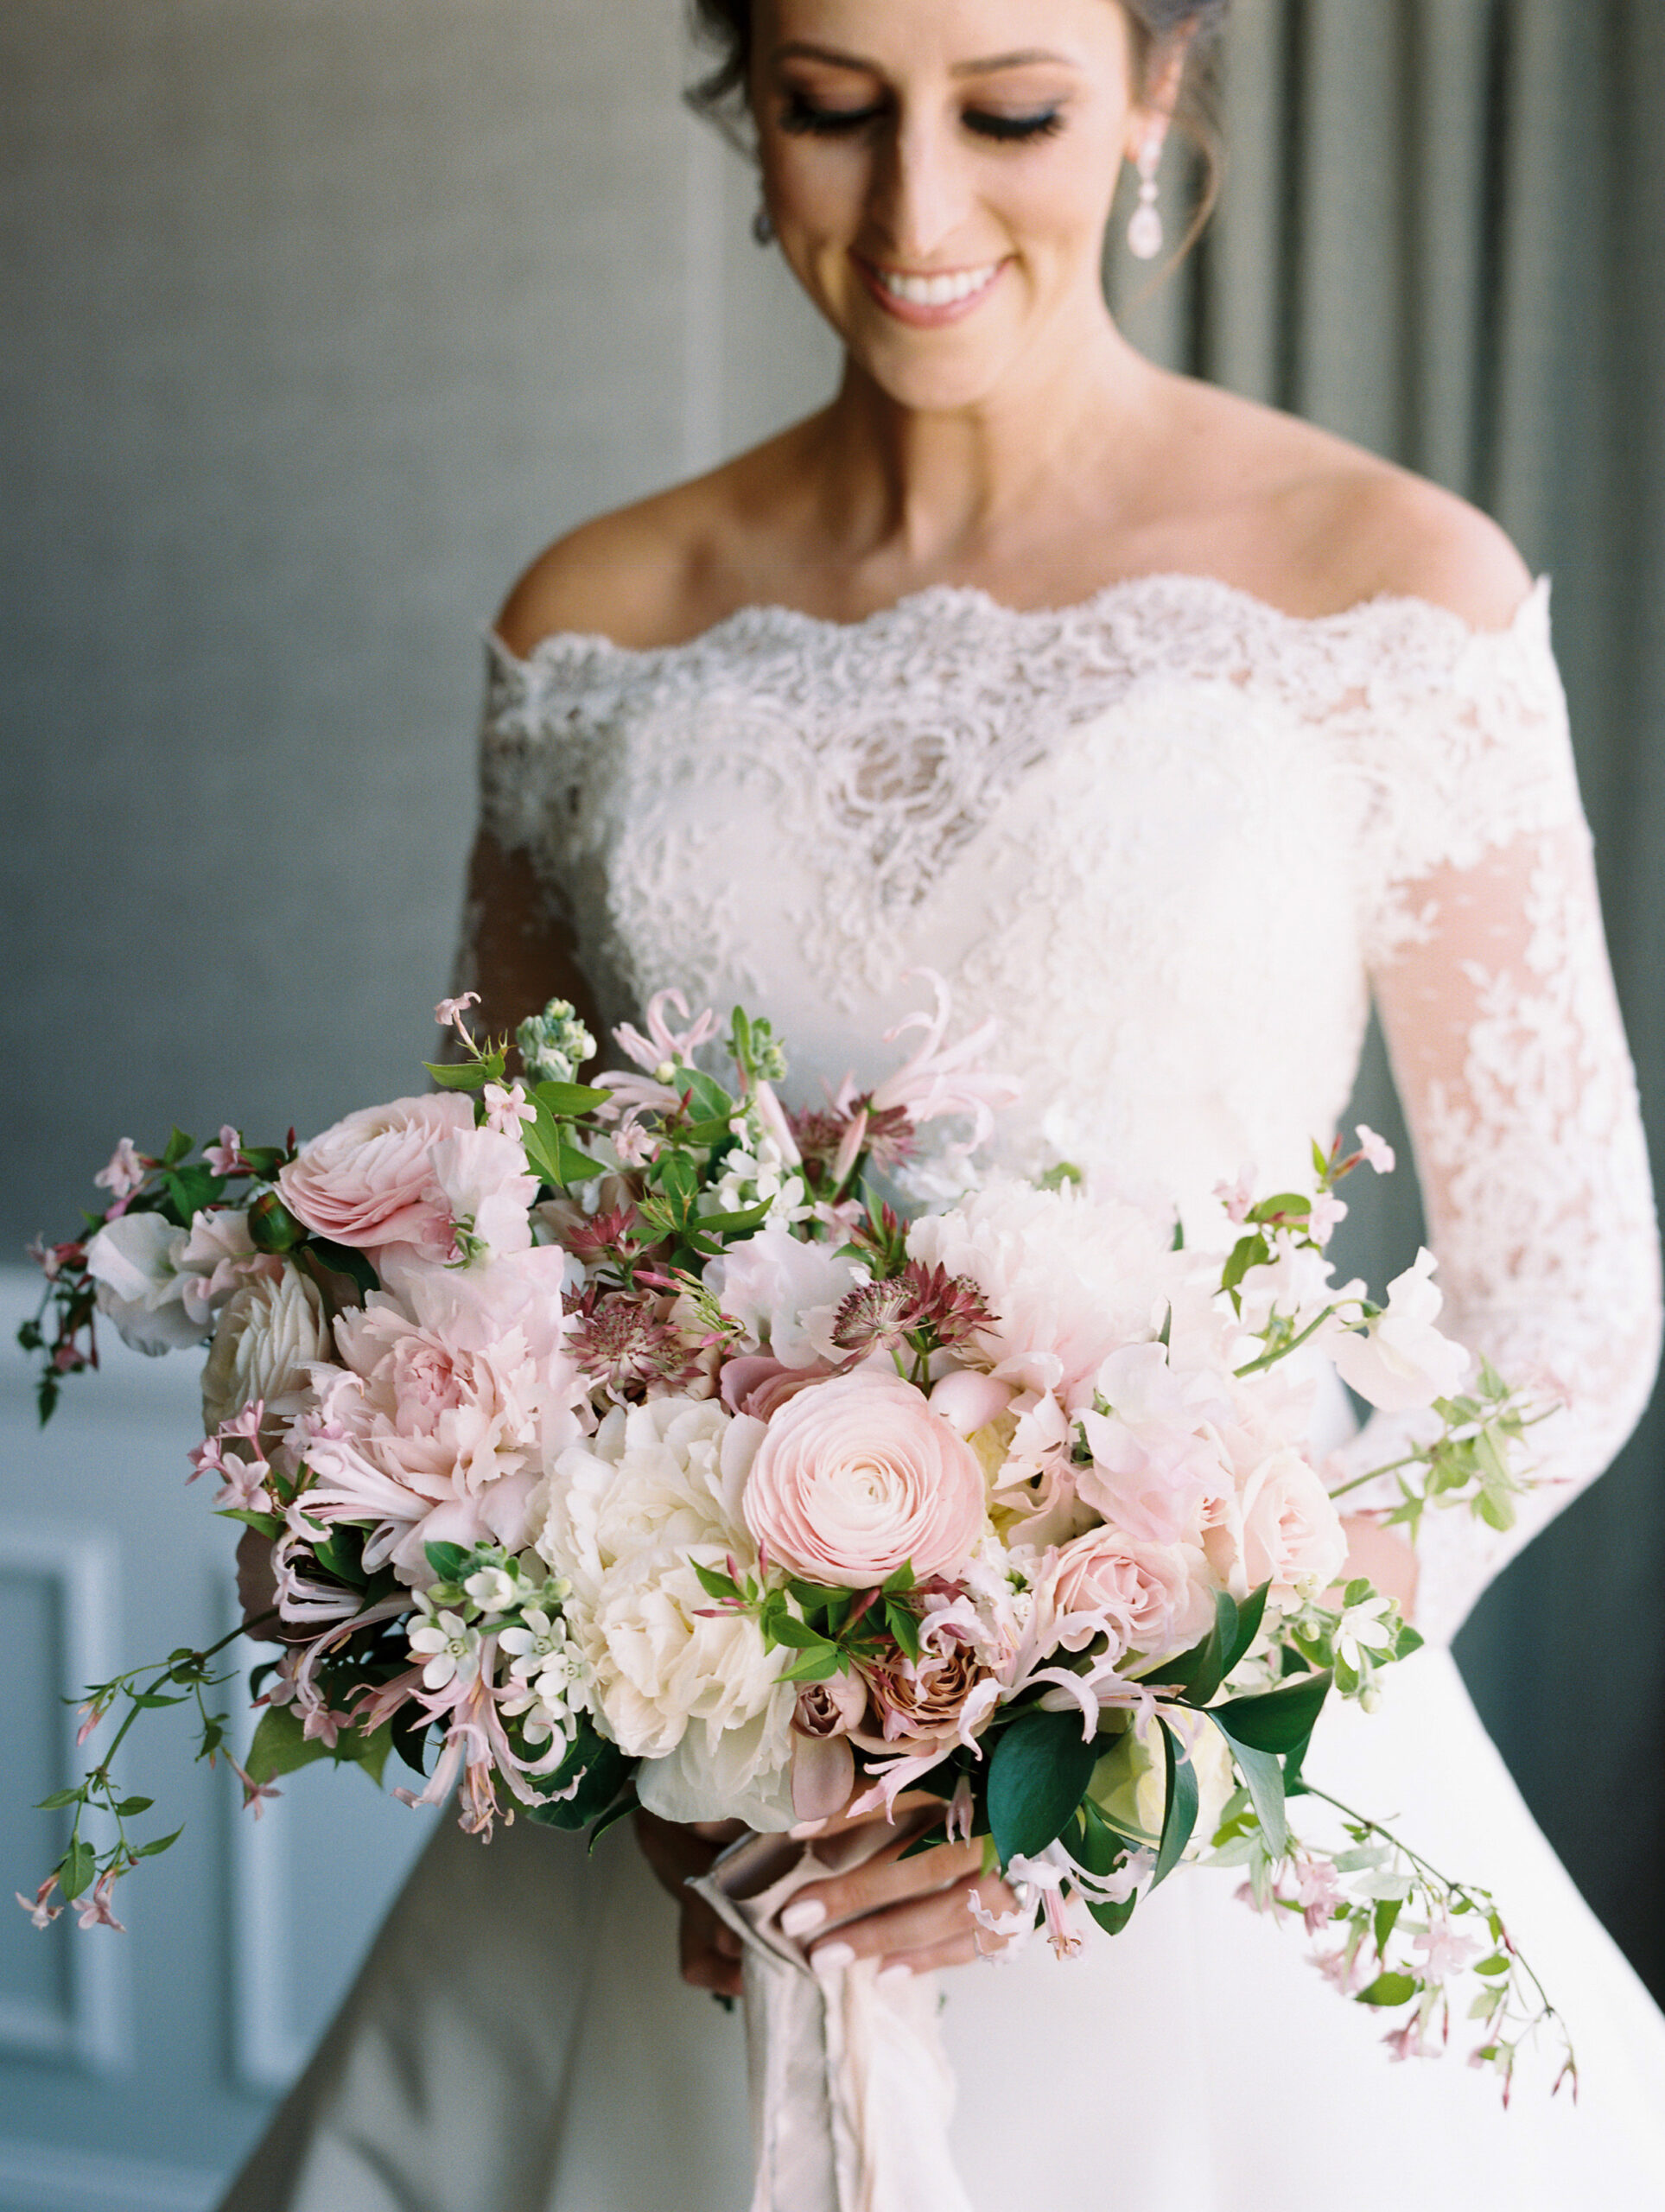 blush ranunculus, blush nerine, blush peonies, white and blush bridal bouquet